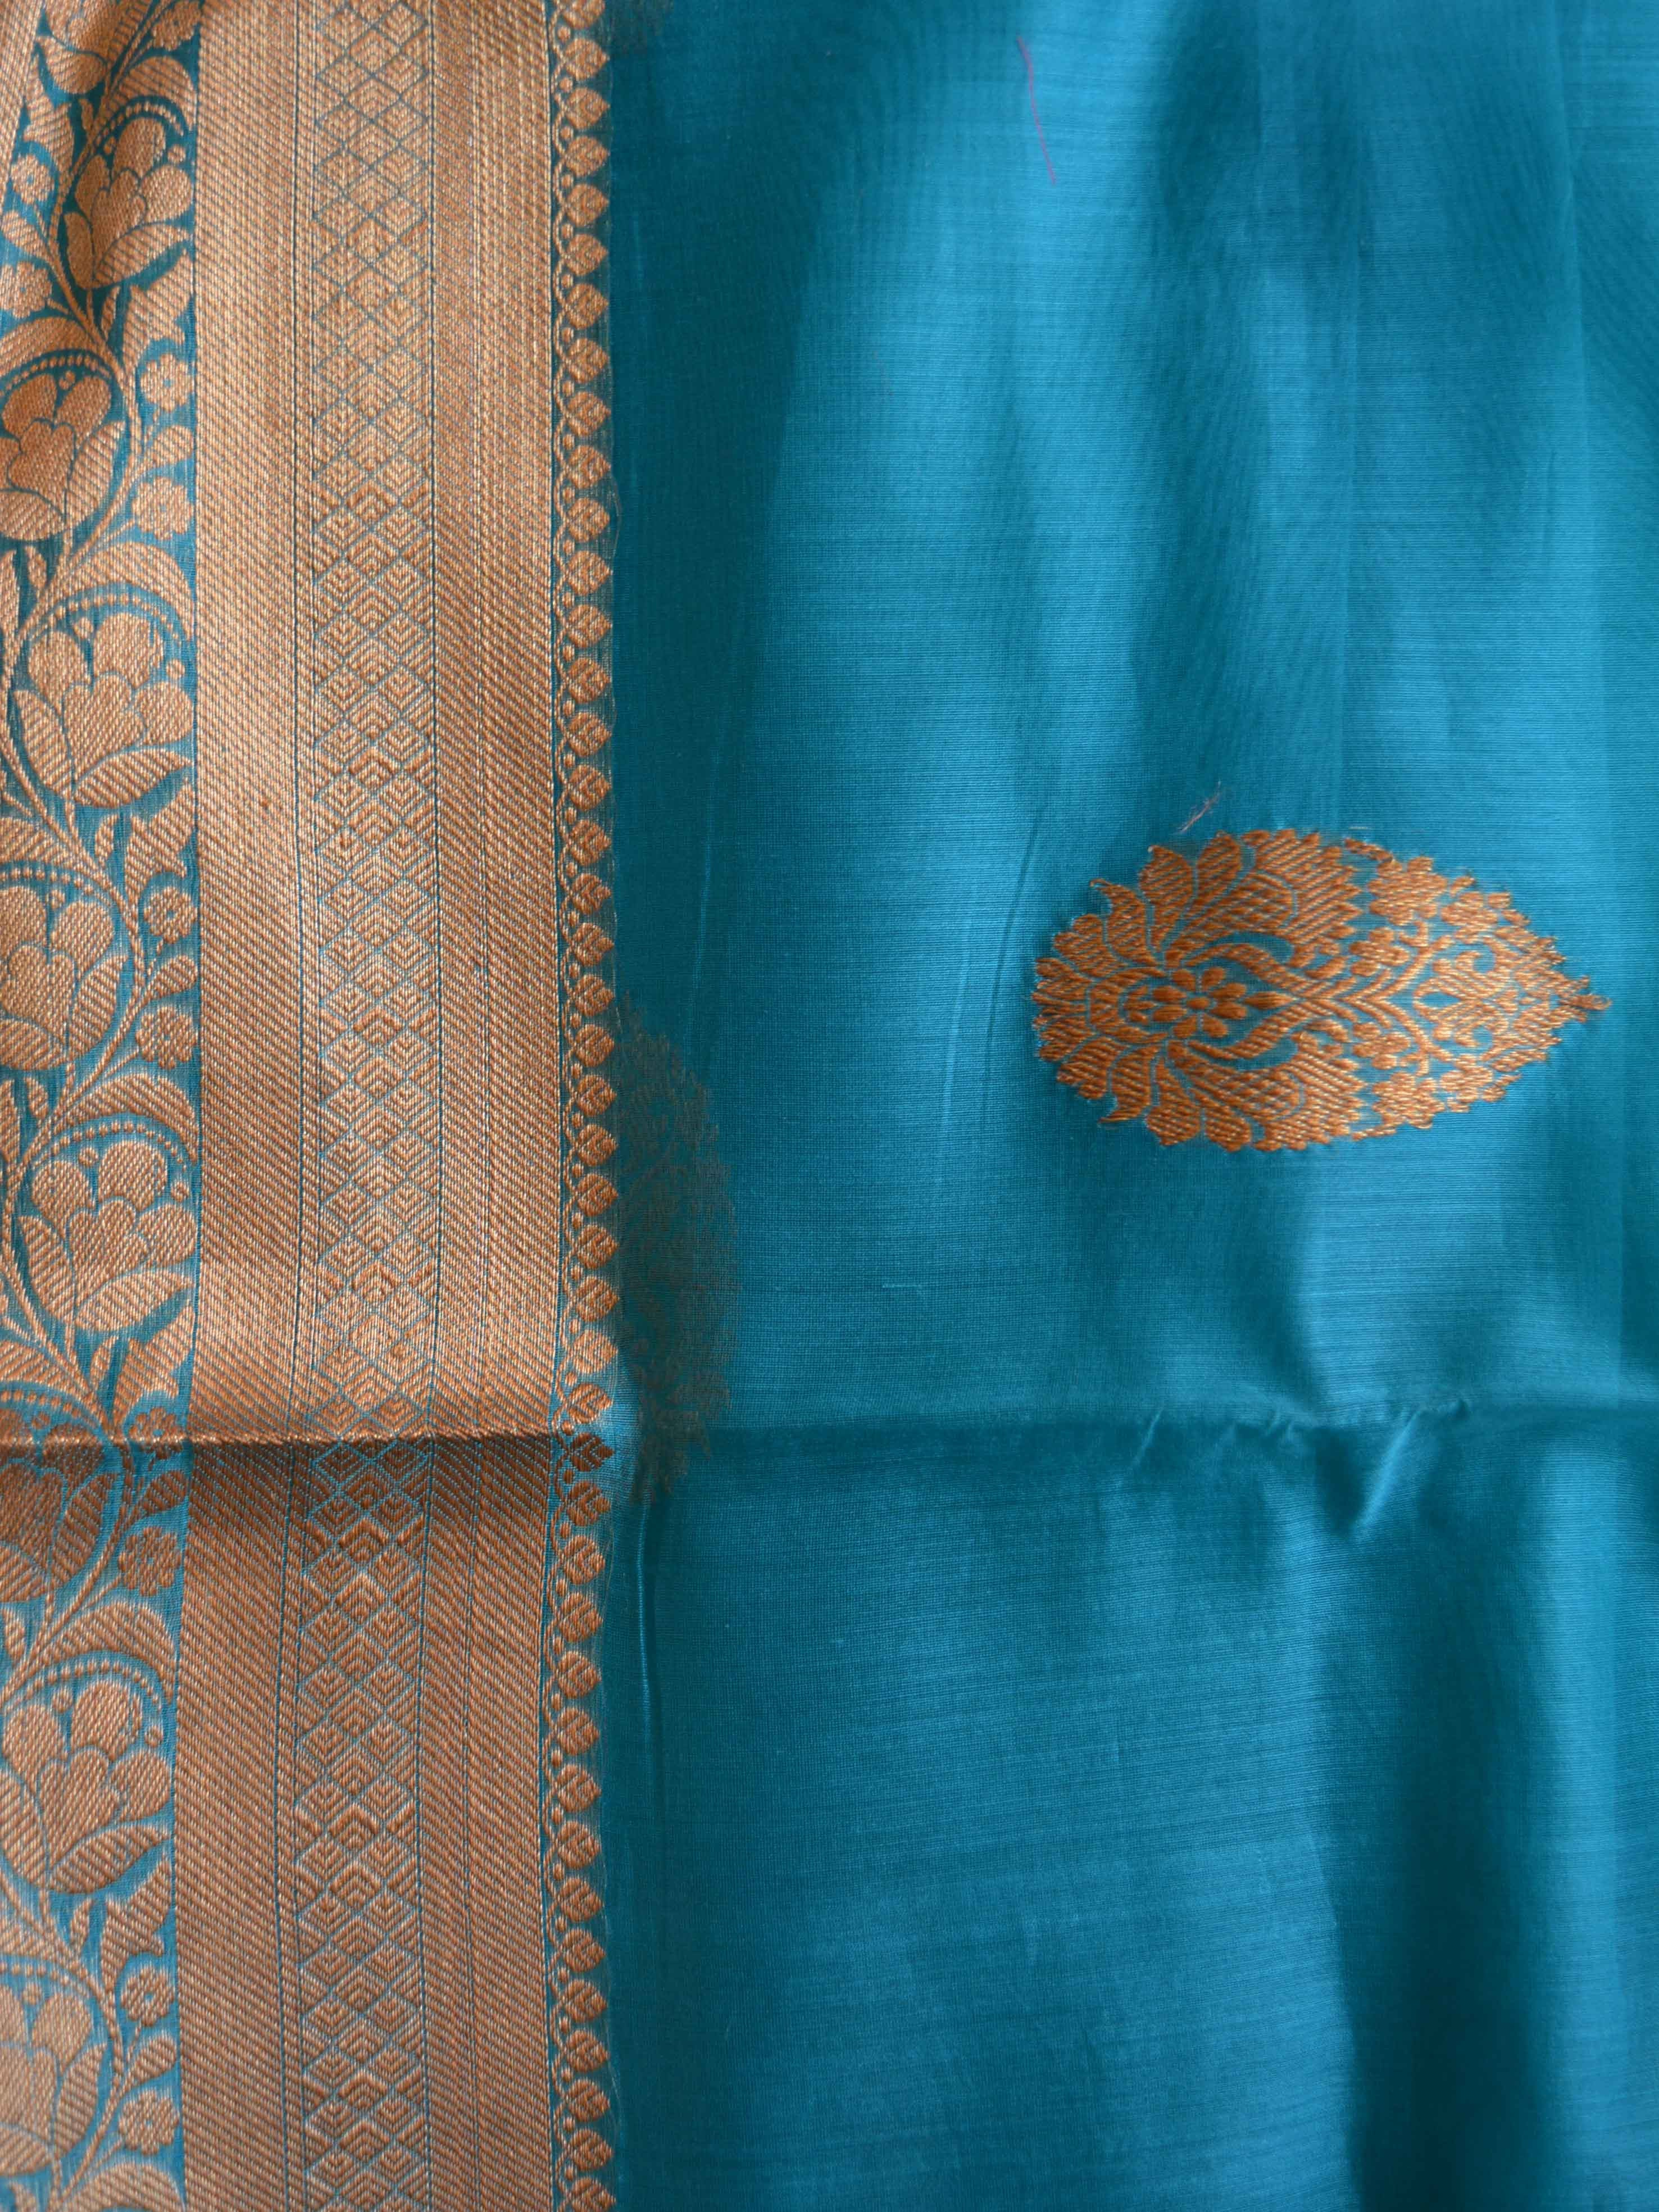 Banarasee/Banarasee Pure Handloom Silk Cotton Saree With Golden Border-Teal Blue